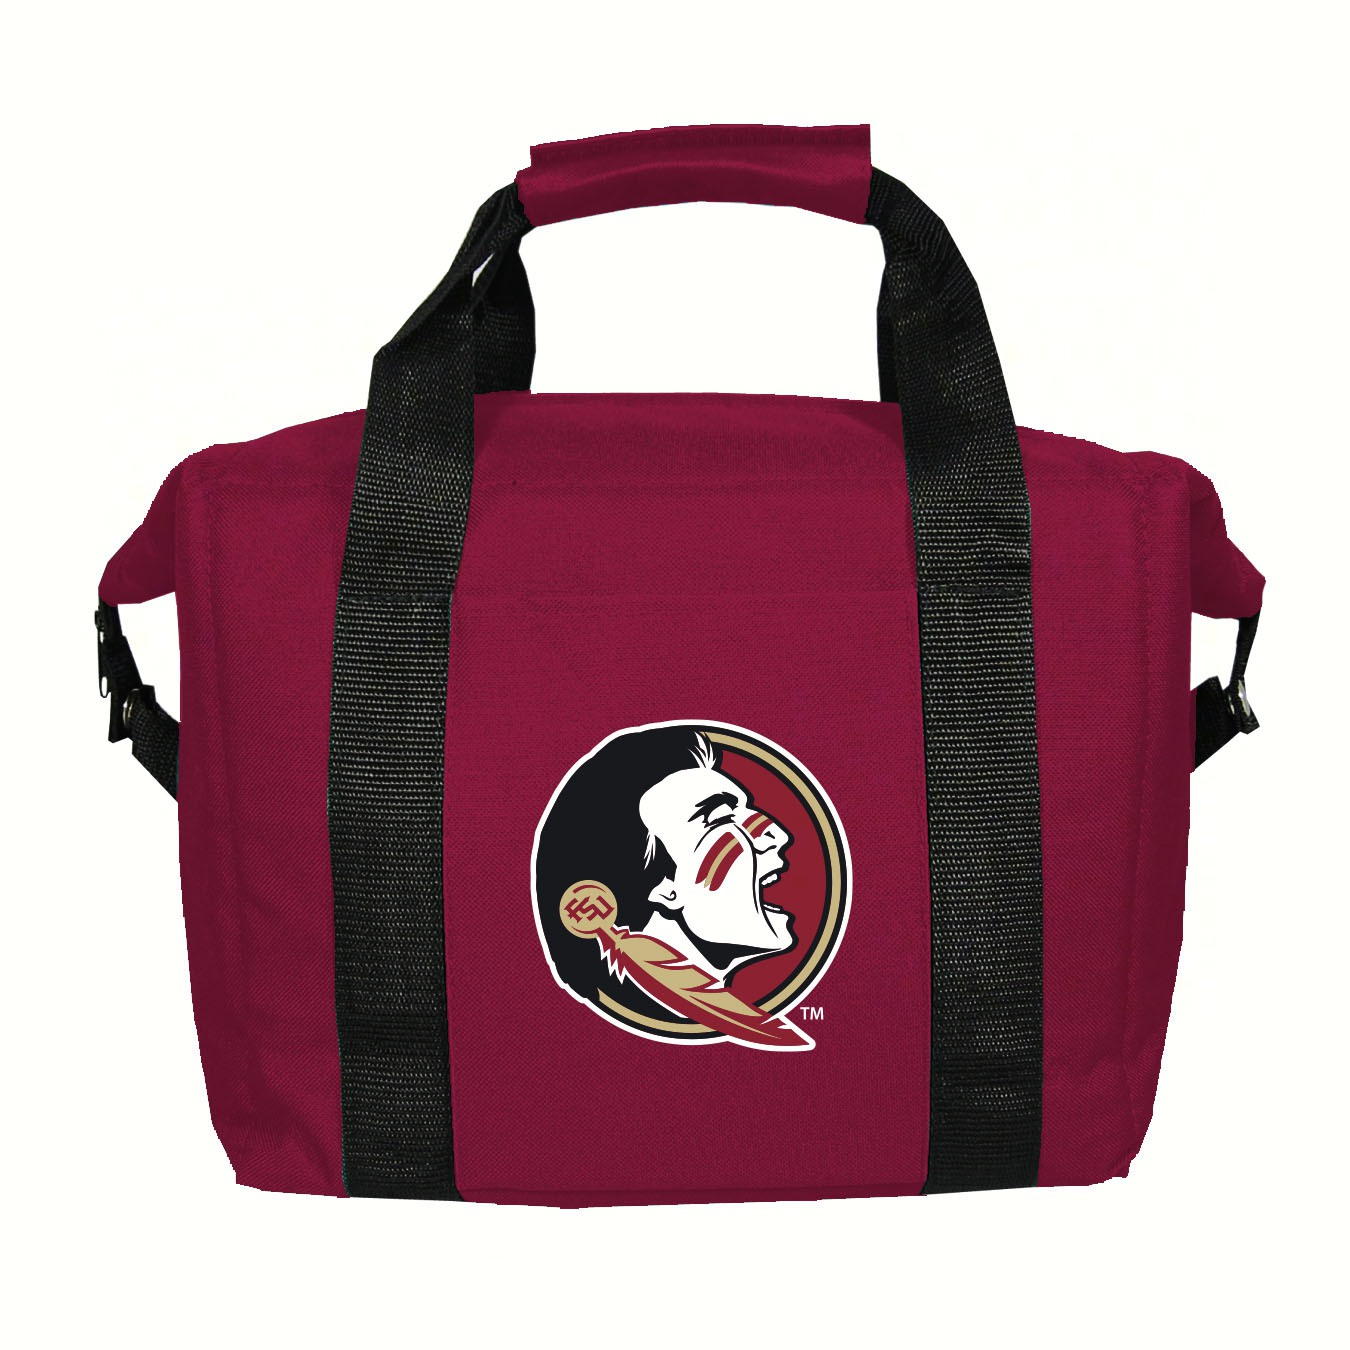 Kooler Bag - Florida State Seminoles (Holds a 12 pack)